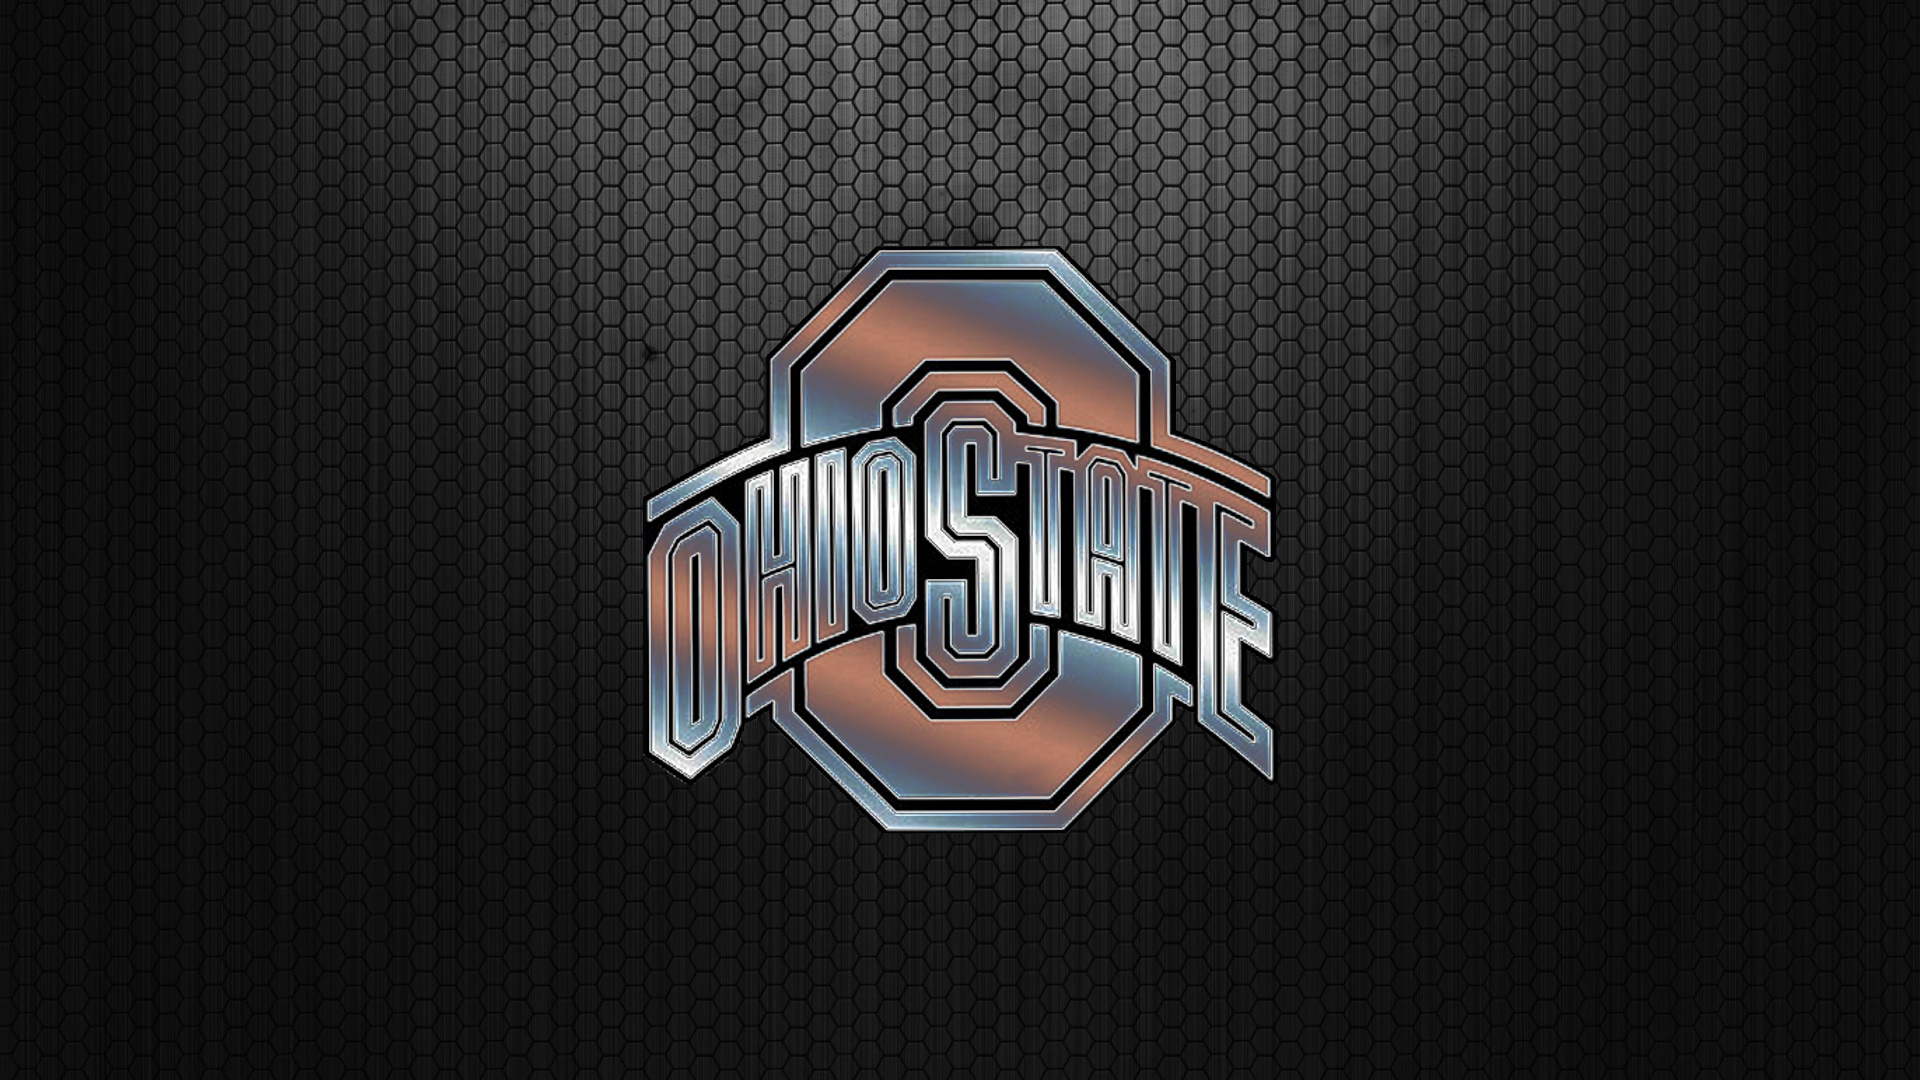 OSU Wallpaper 15   Ohio State Football Wallpaper 29317581 1920x1080